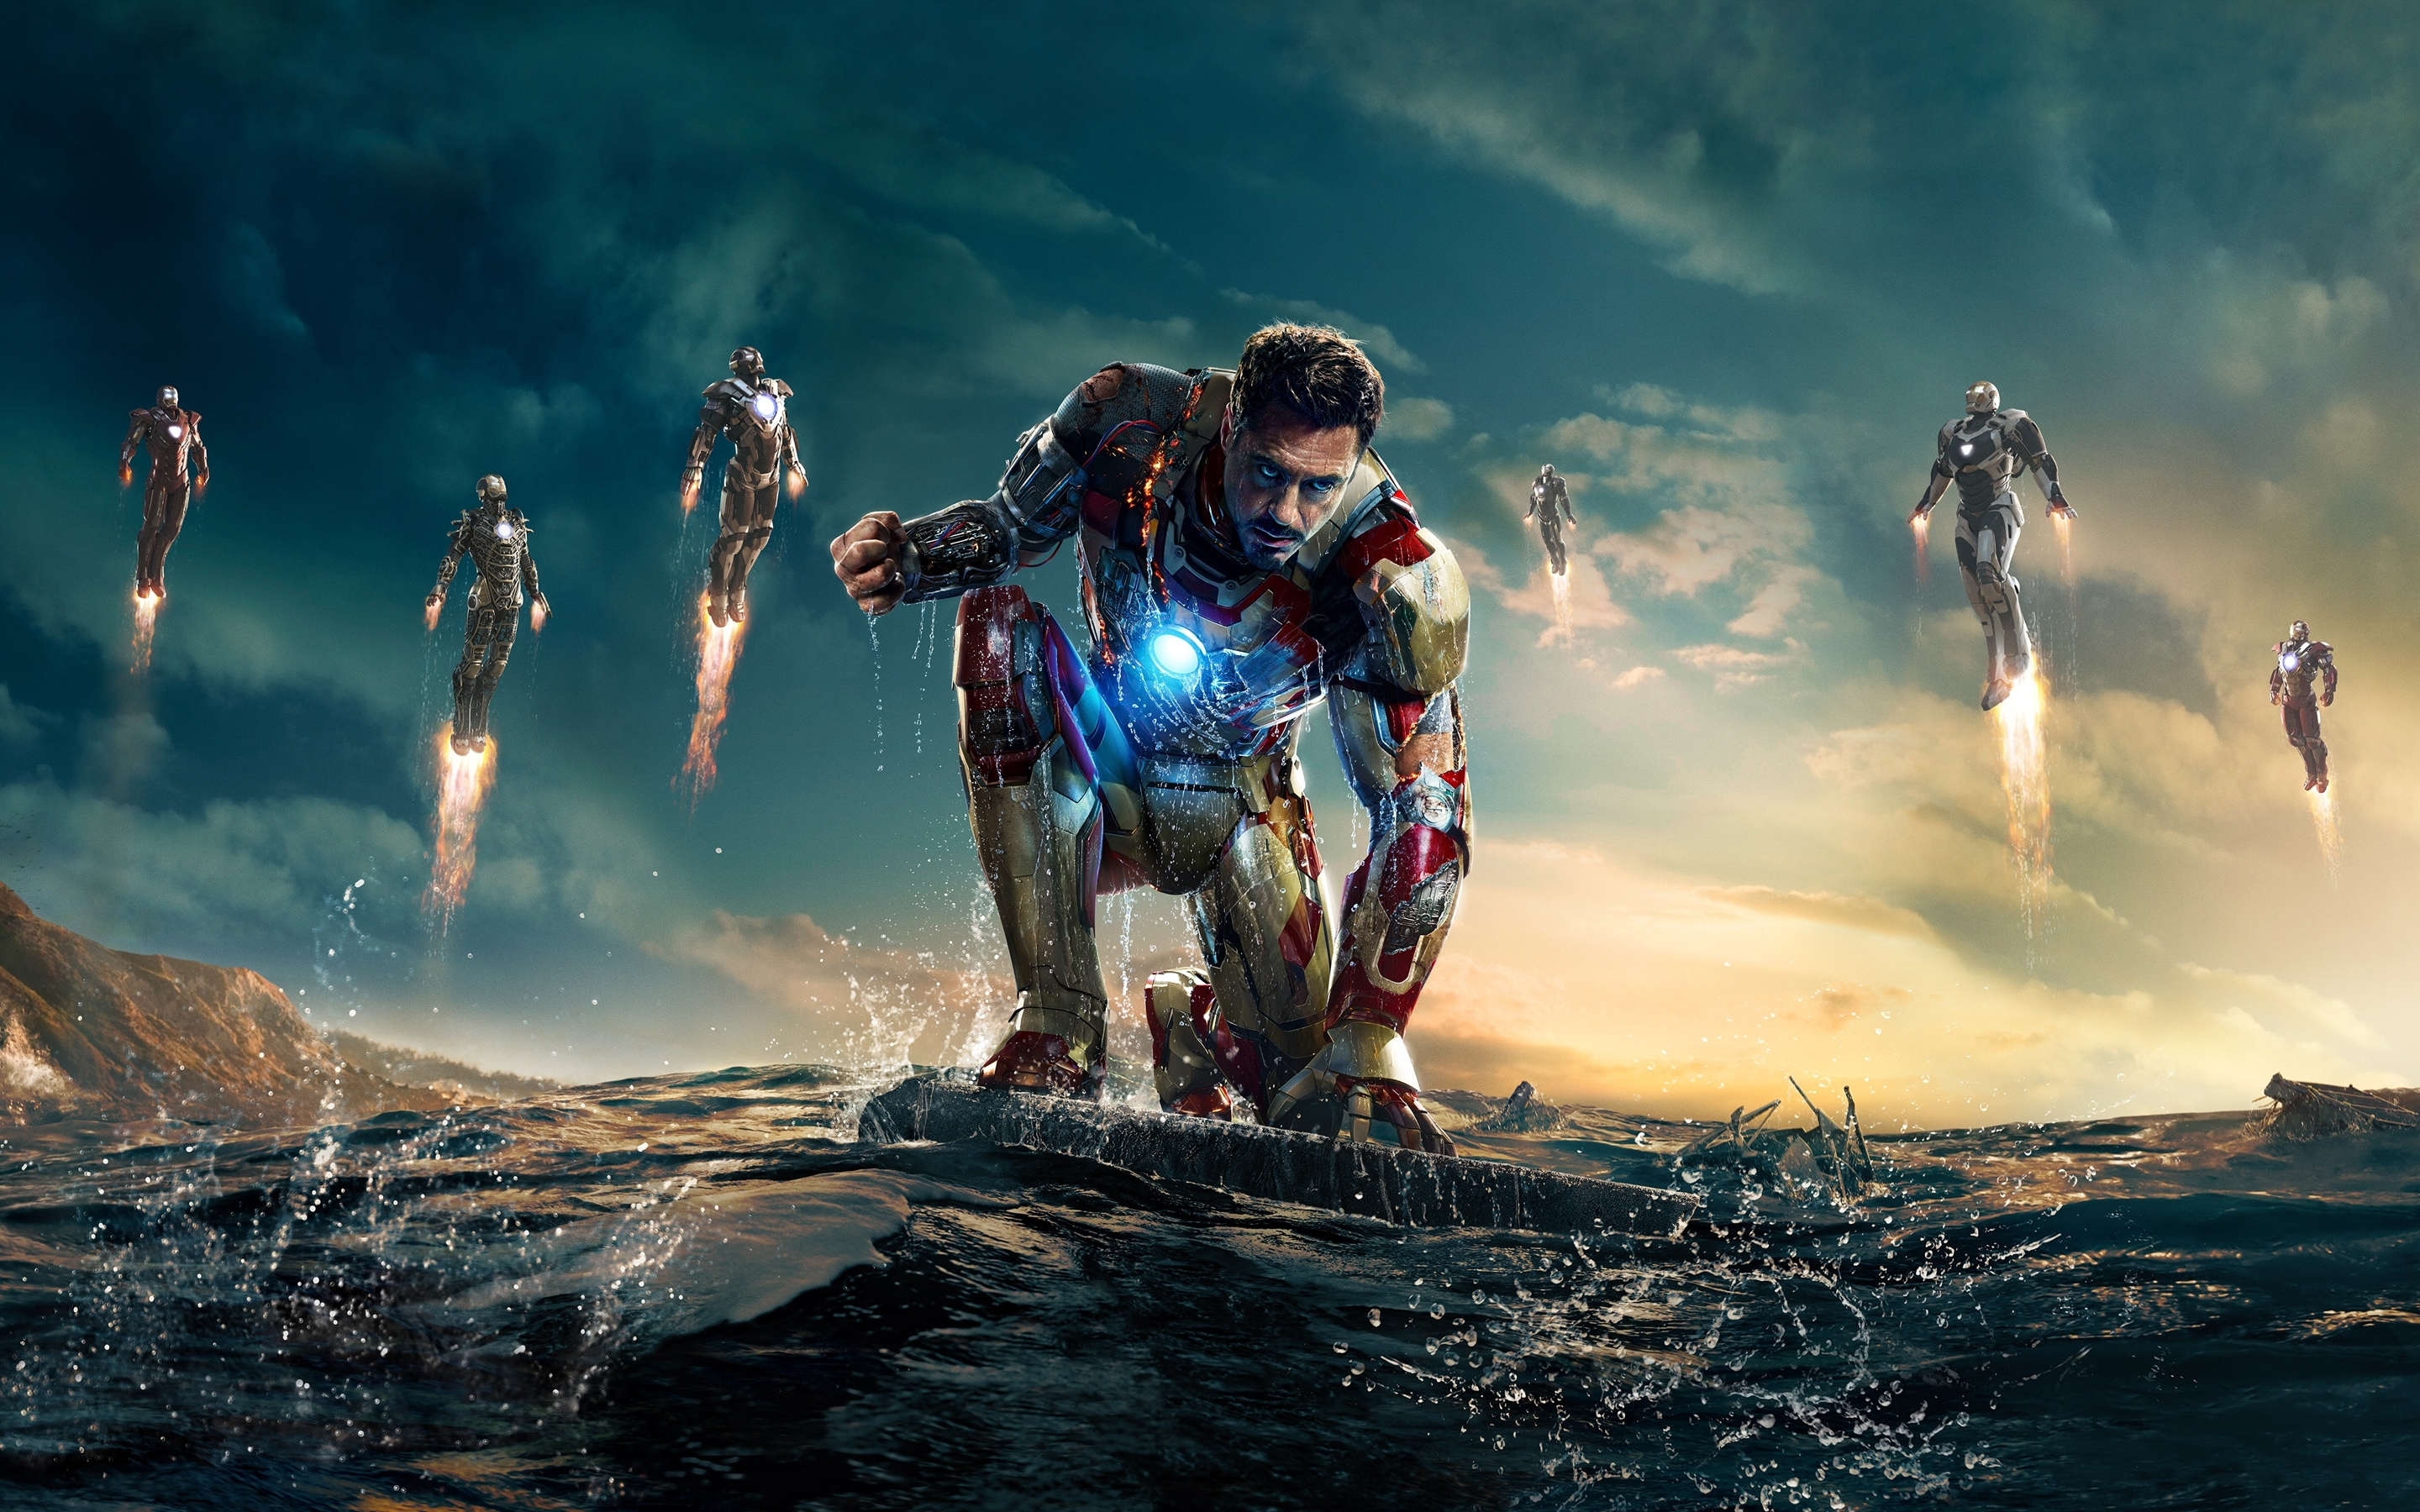 Iron Man 3 New Mac Wallpaper Download Mac Wallpapers Download 2880x1800